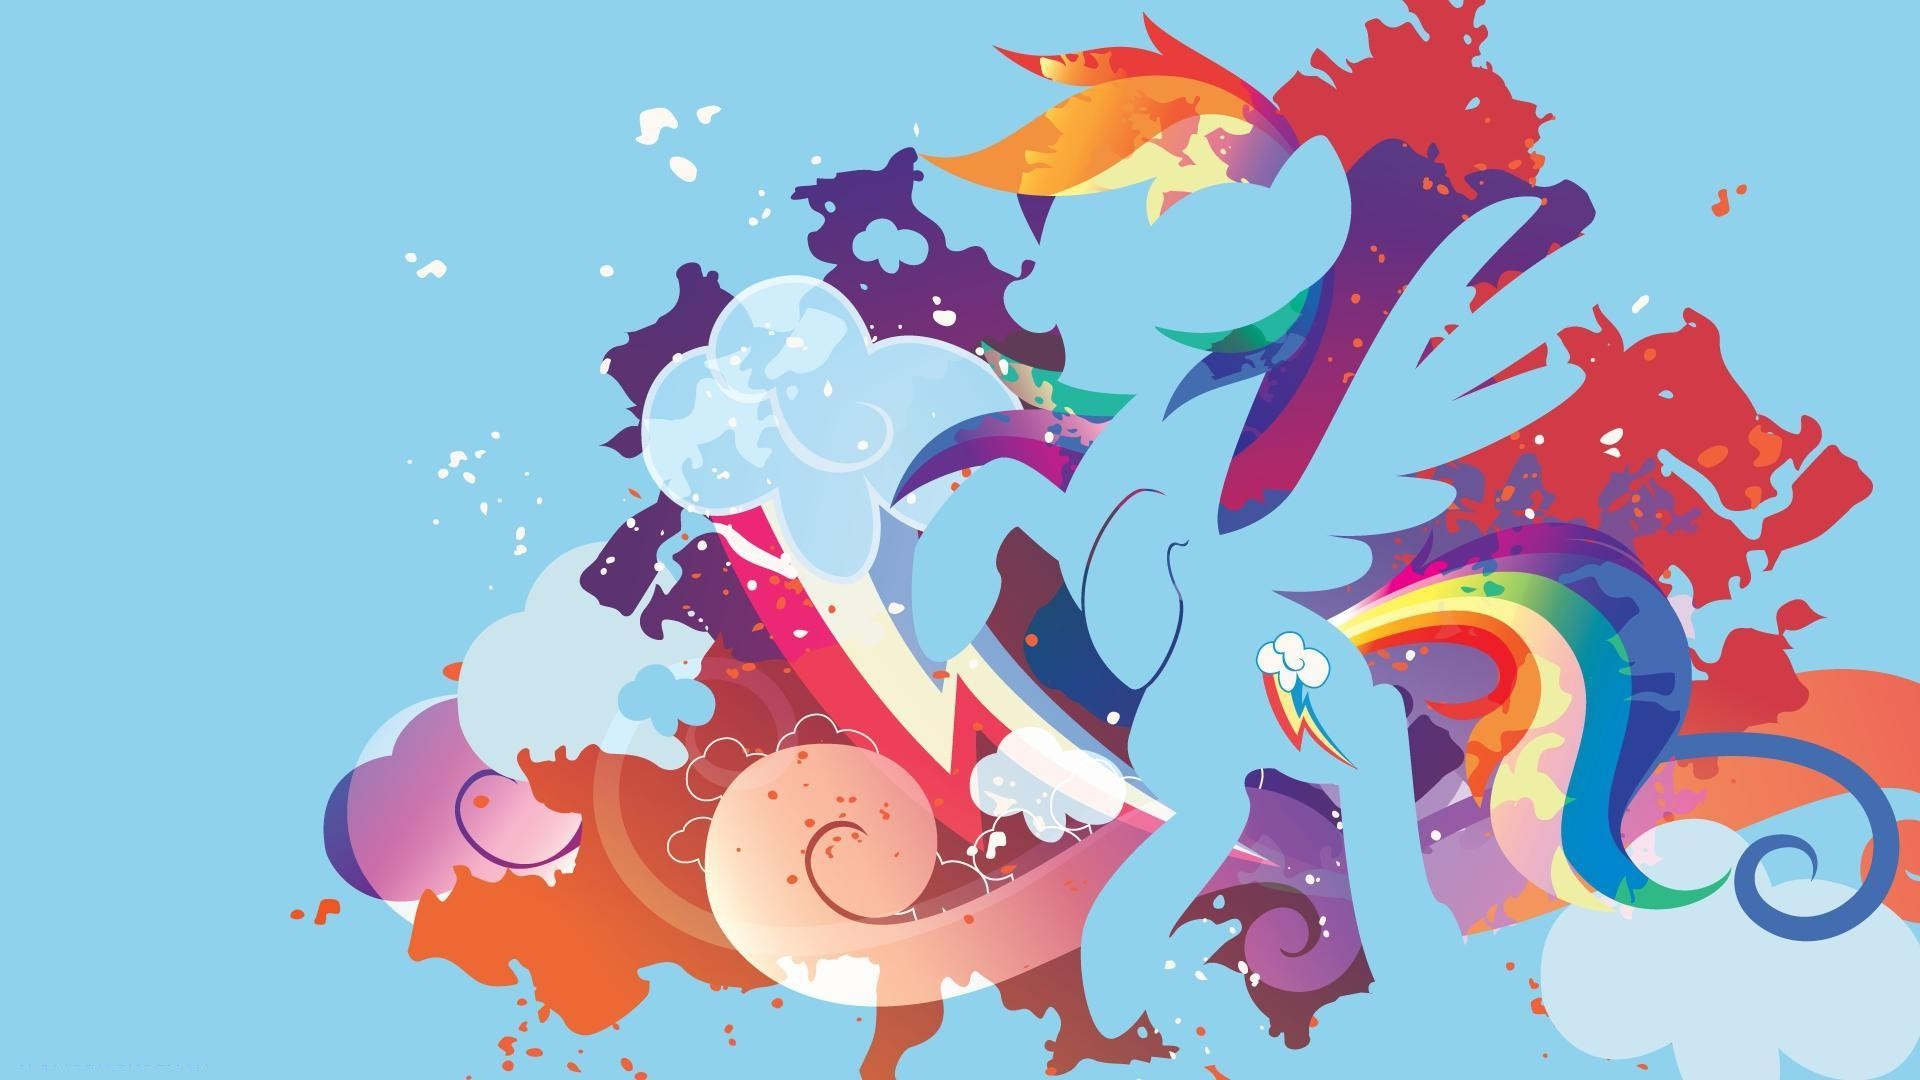 1920x1080 rainbow dash mlp wallpapers hd desktop wallpapers high definition monitor  download free amazing background photos artwork 1920×1080 Wallpaper HD